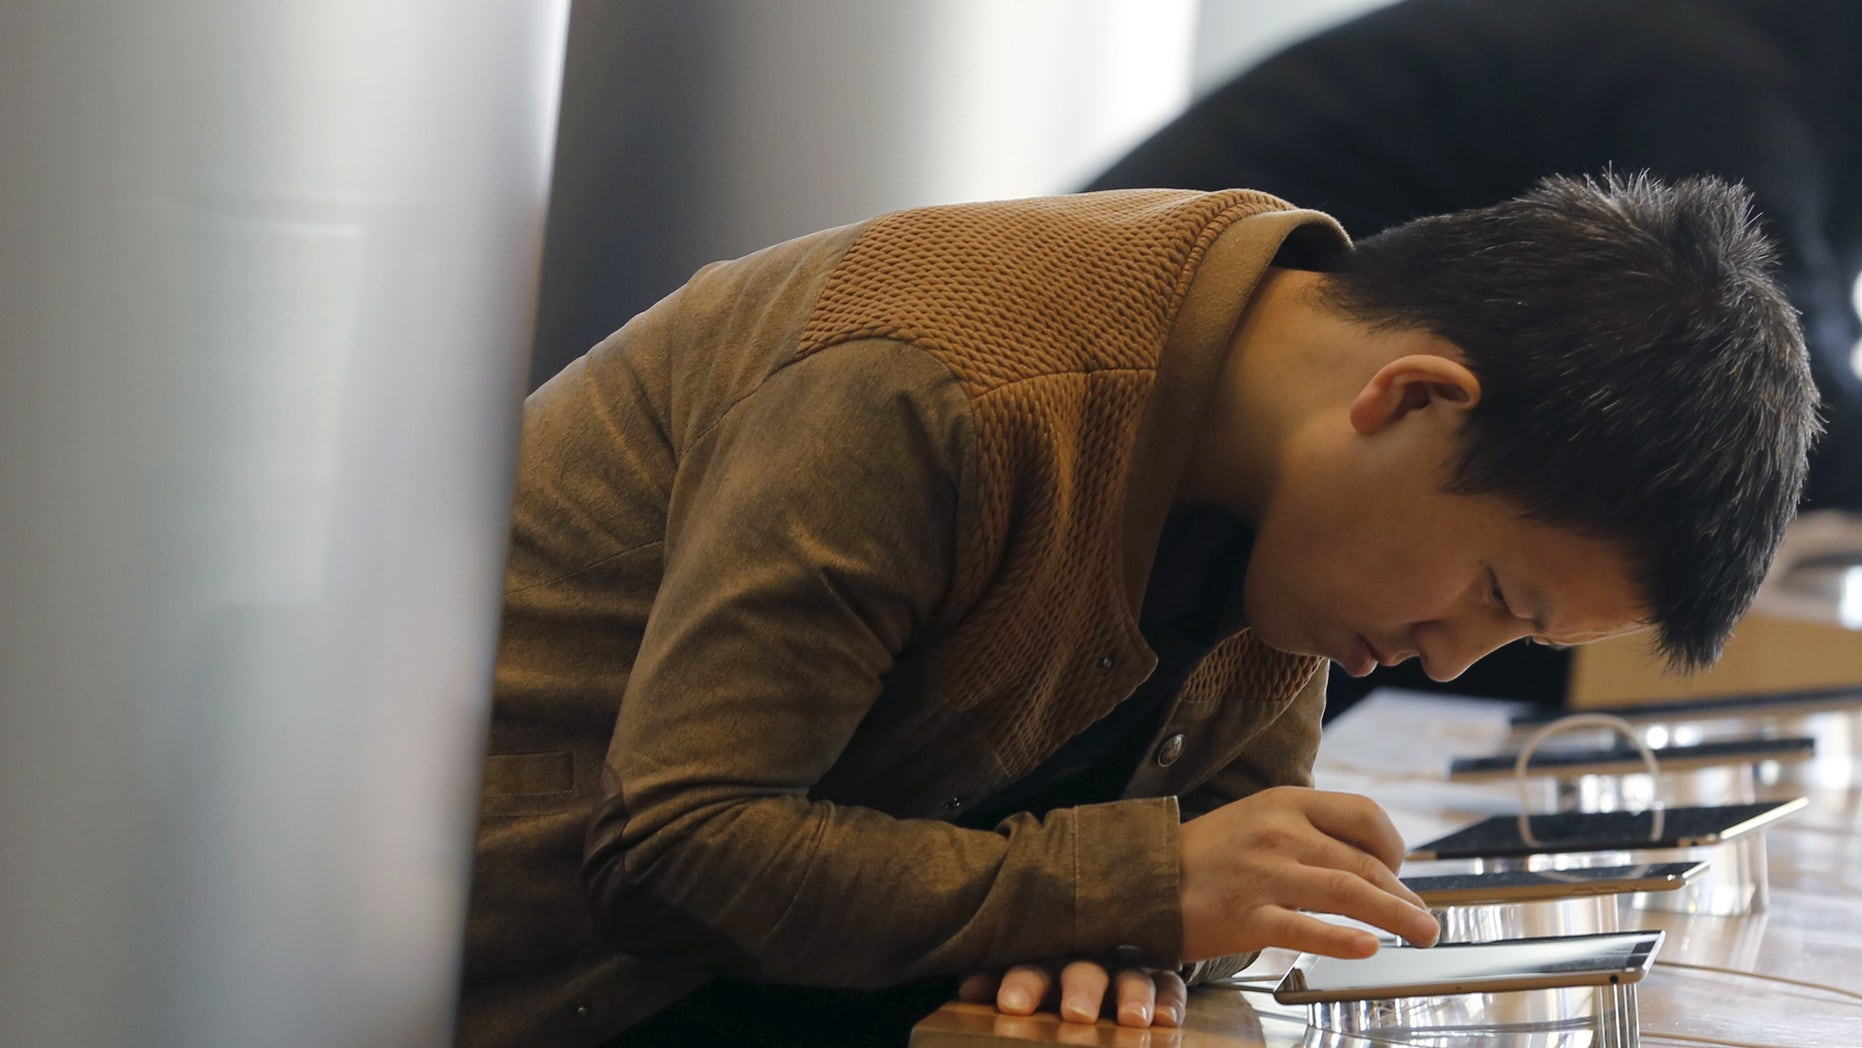 A man tries Apple's iPhone 6 at an Apple store in Beijing, November 2, 2015. (REUTERS/Kim Kyung-Hoon)